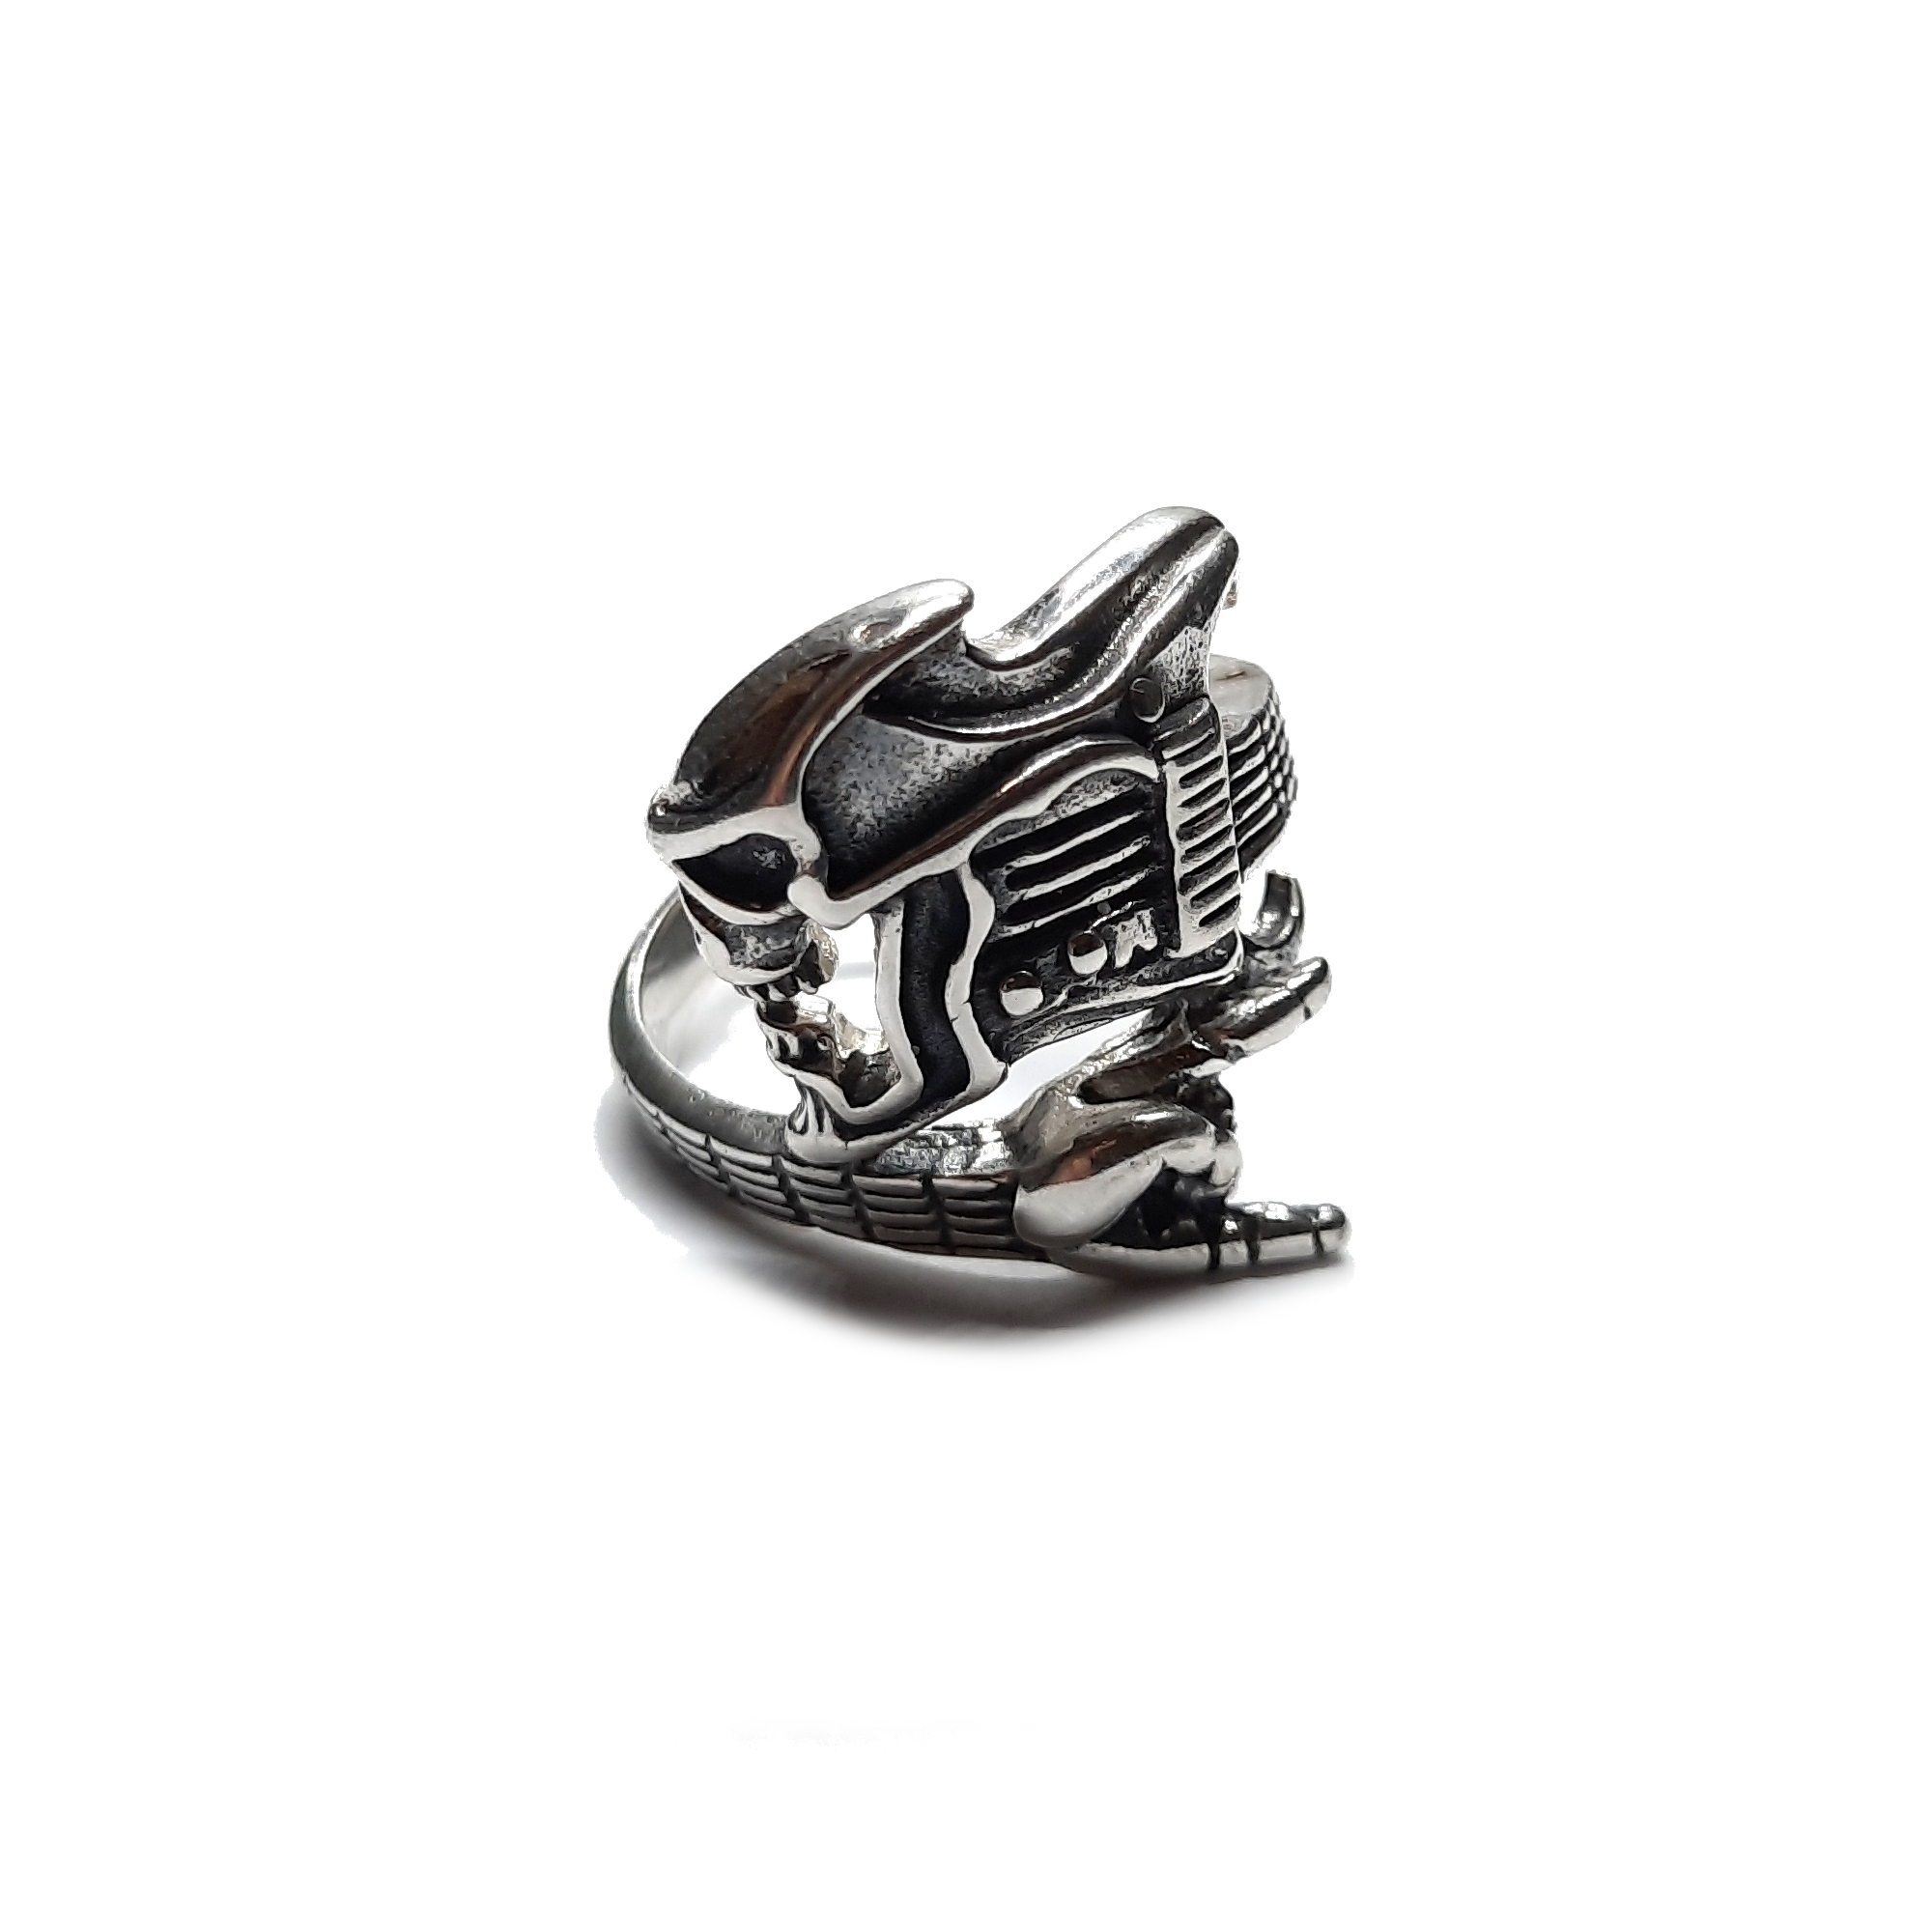 Silver ring - R002201